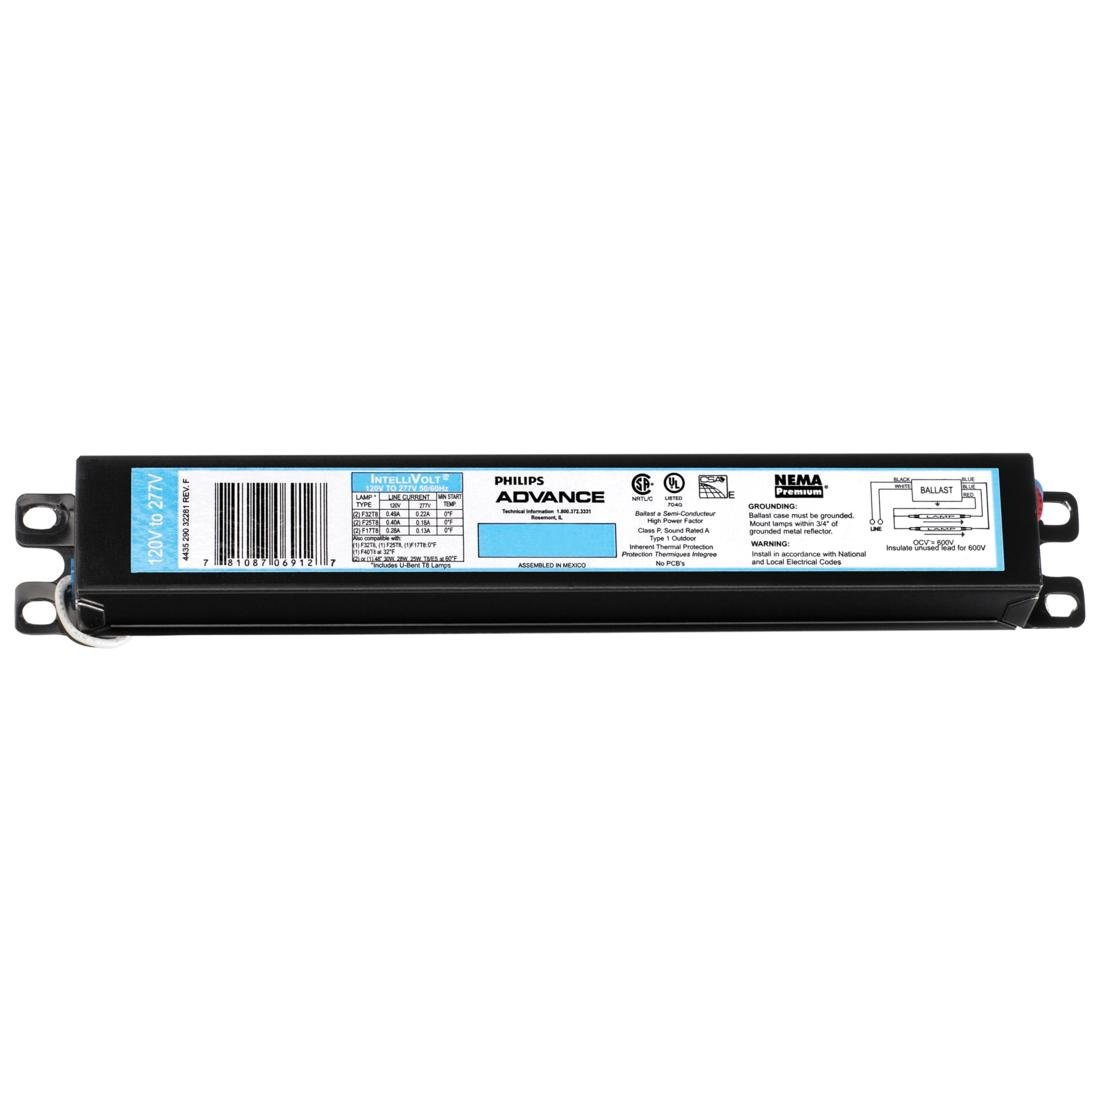 ICN-4P32-N (Previously ICN-4P32-SC) Electronic FL Ballast for 3-4 F32T8 F40T8 F17T8 Lamps Run at 120V/277V Philips NCOREJNJIJKKM4808